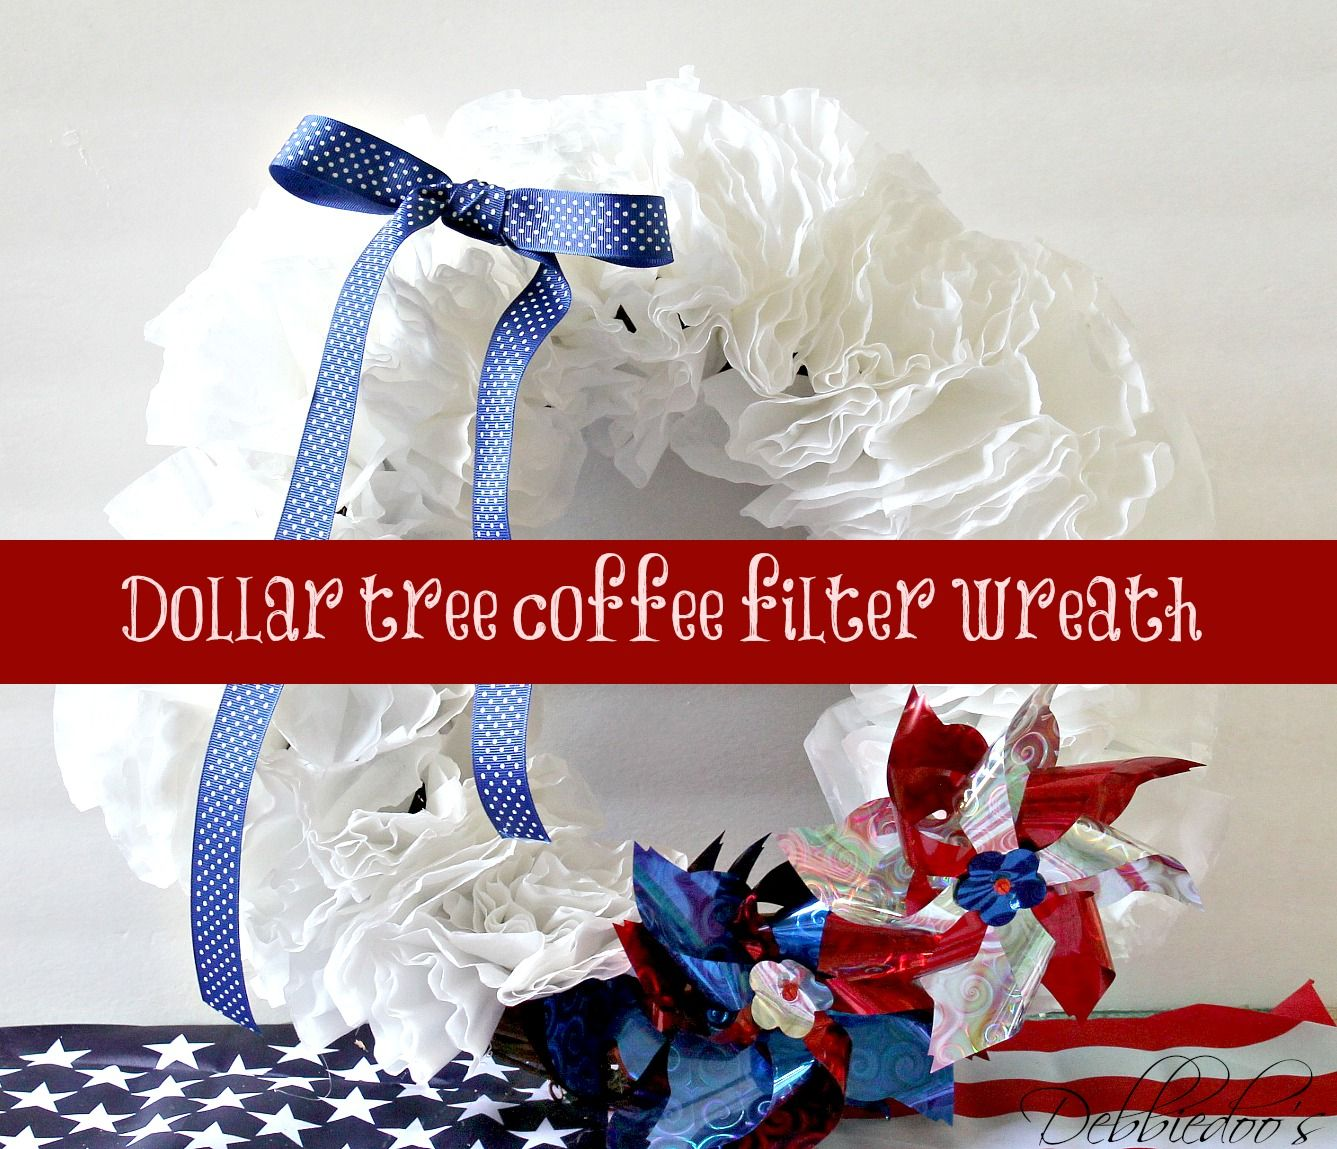 Memorial Day Remembrance And A Dollar Tree Memorial Day Wreath Debbiedoos Dollar Tree Diy Crafts Memorial Day Wreaths Coffee Filter Wreath